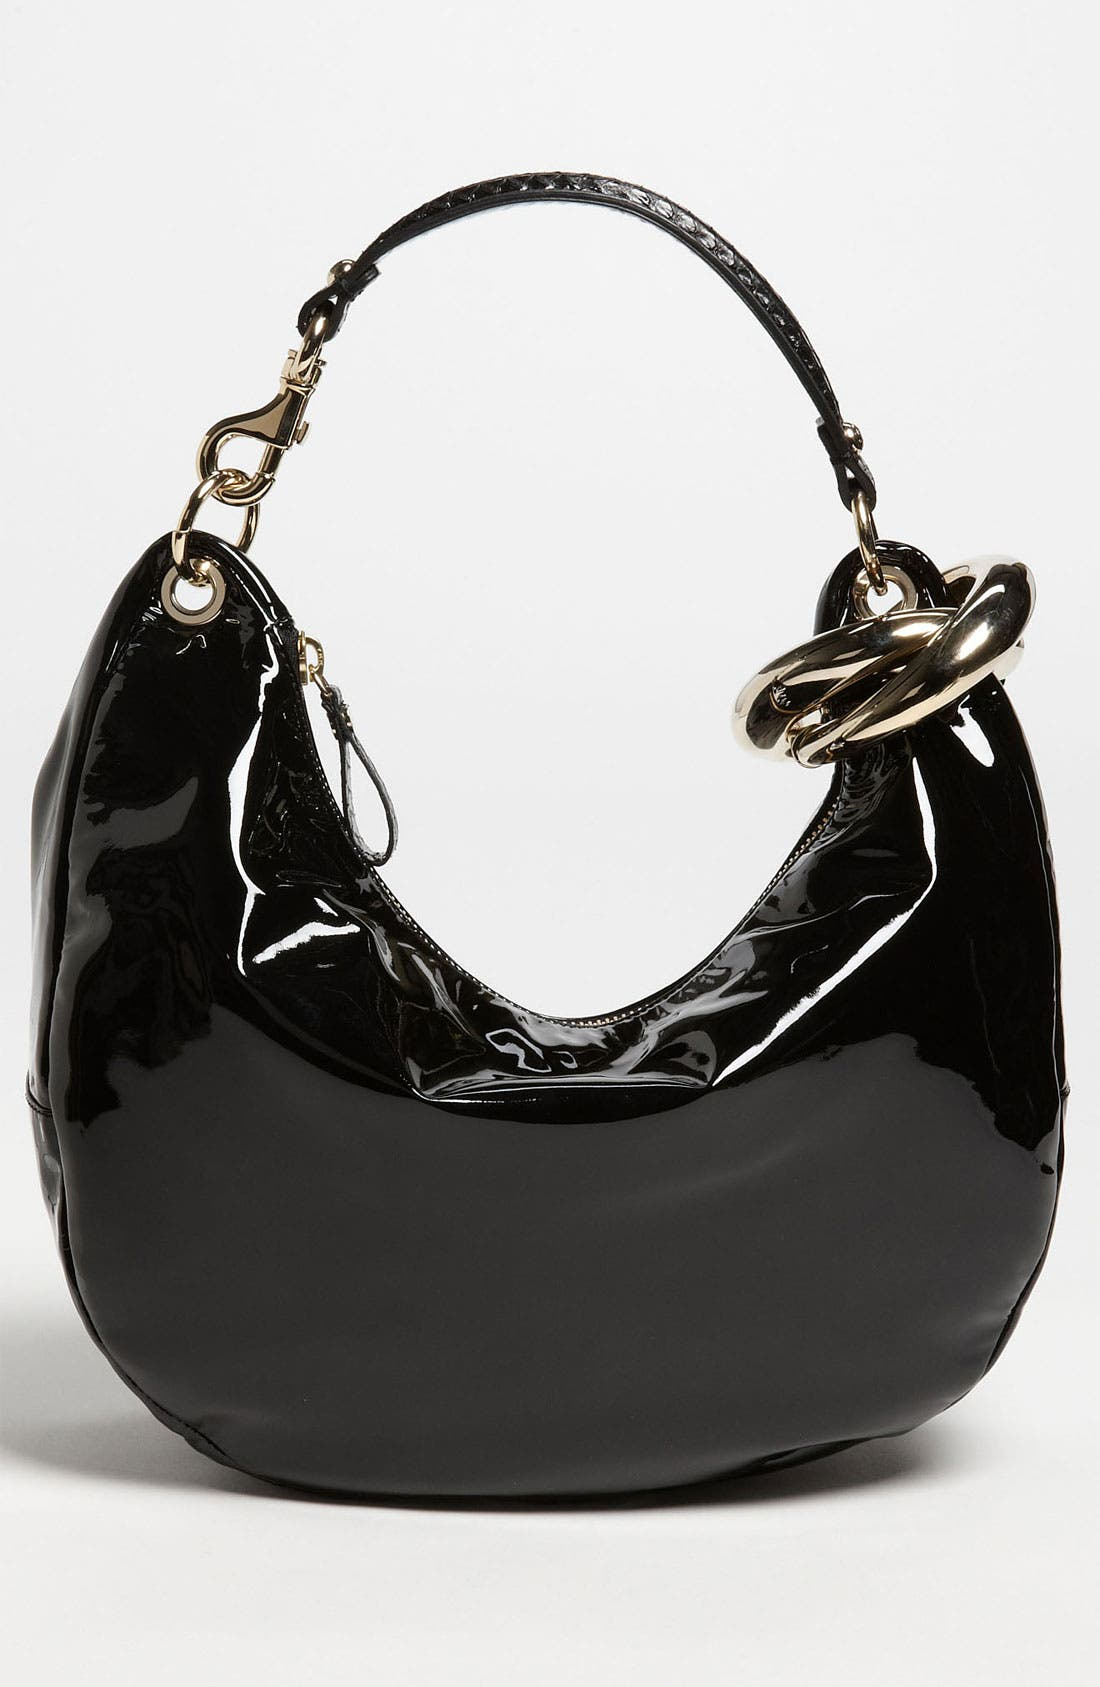 Alternate Image 1 Selected - Jimmy Choo 'Solar - Small' Patent Leather Hobo